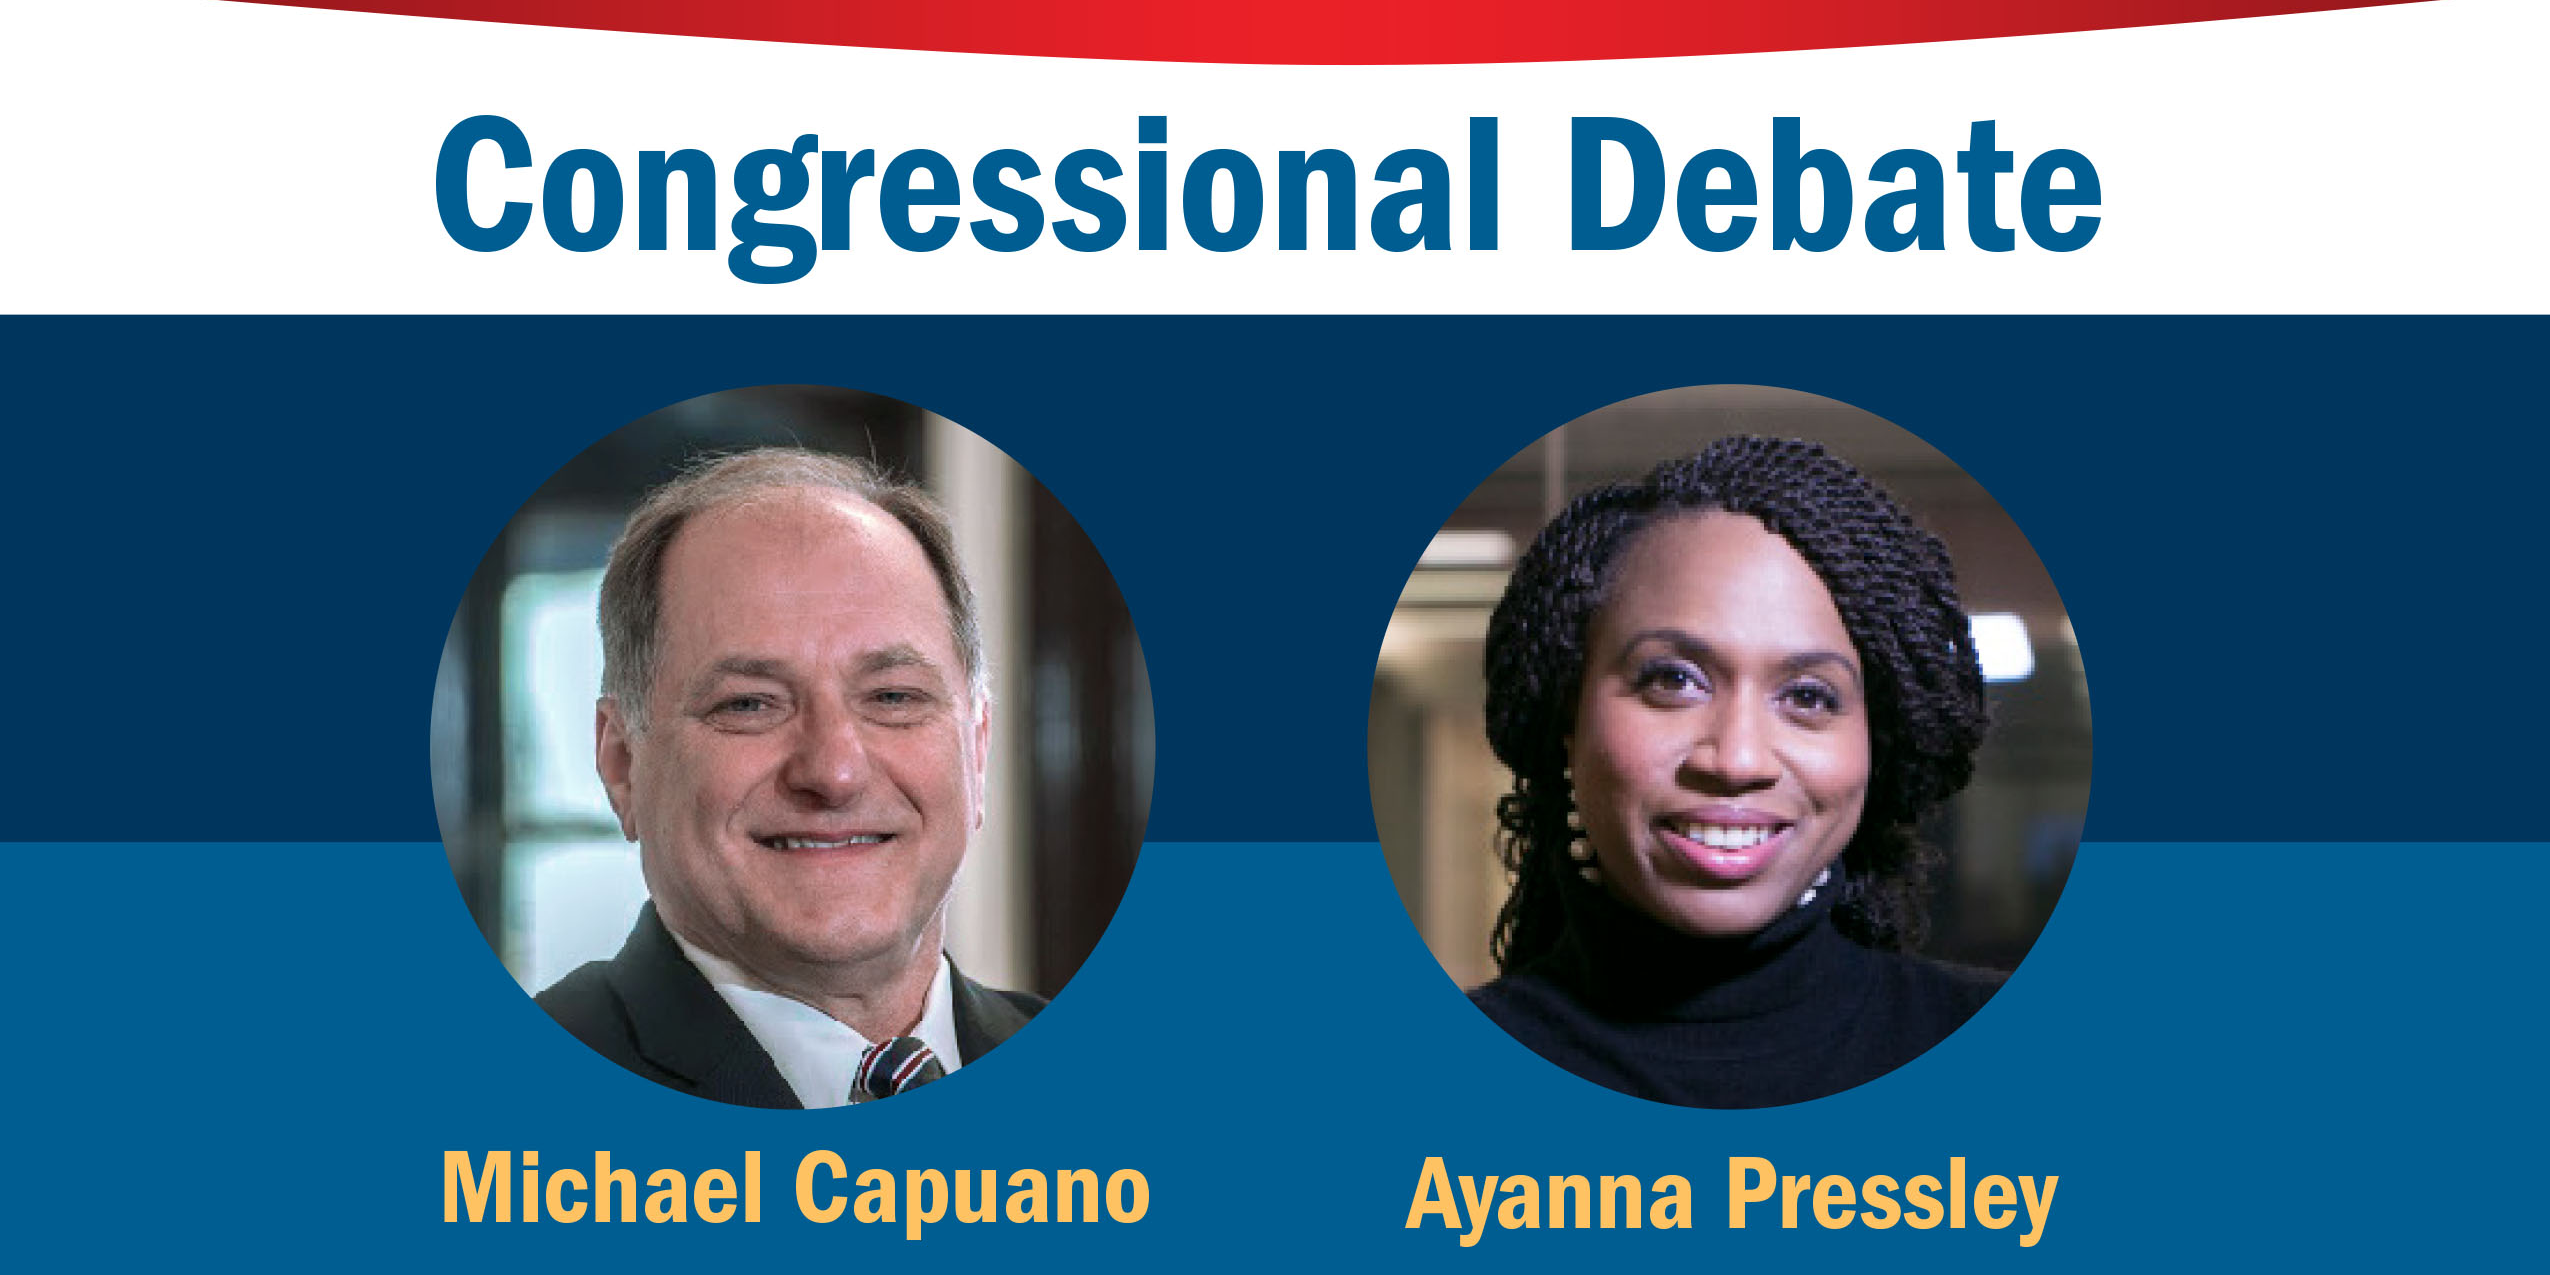 Michael Capuano and Ayanna Pressley